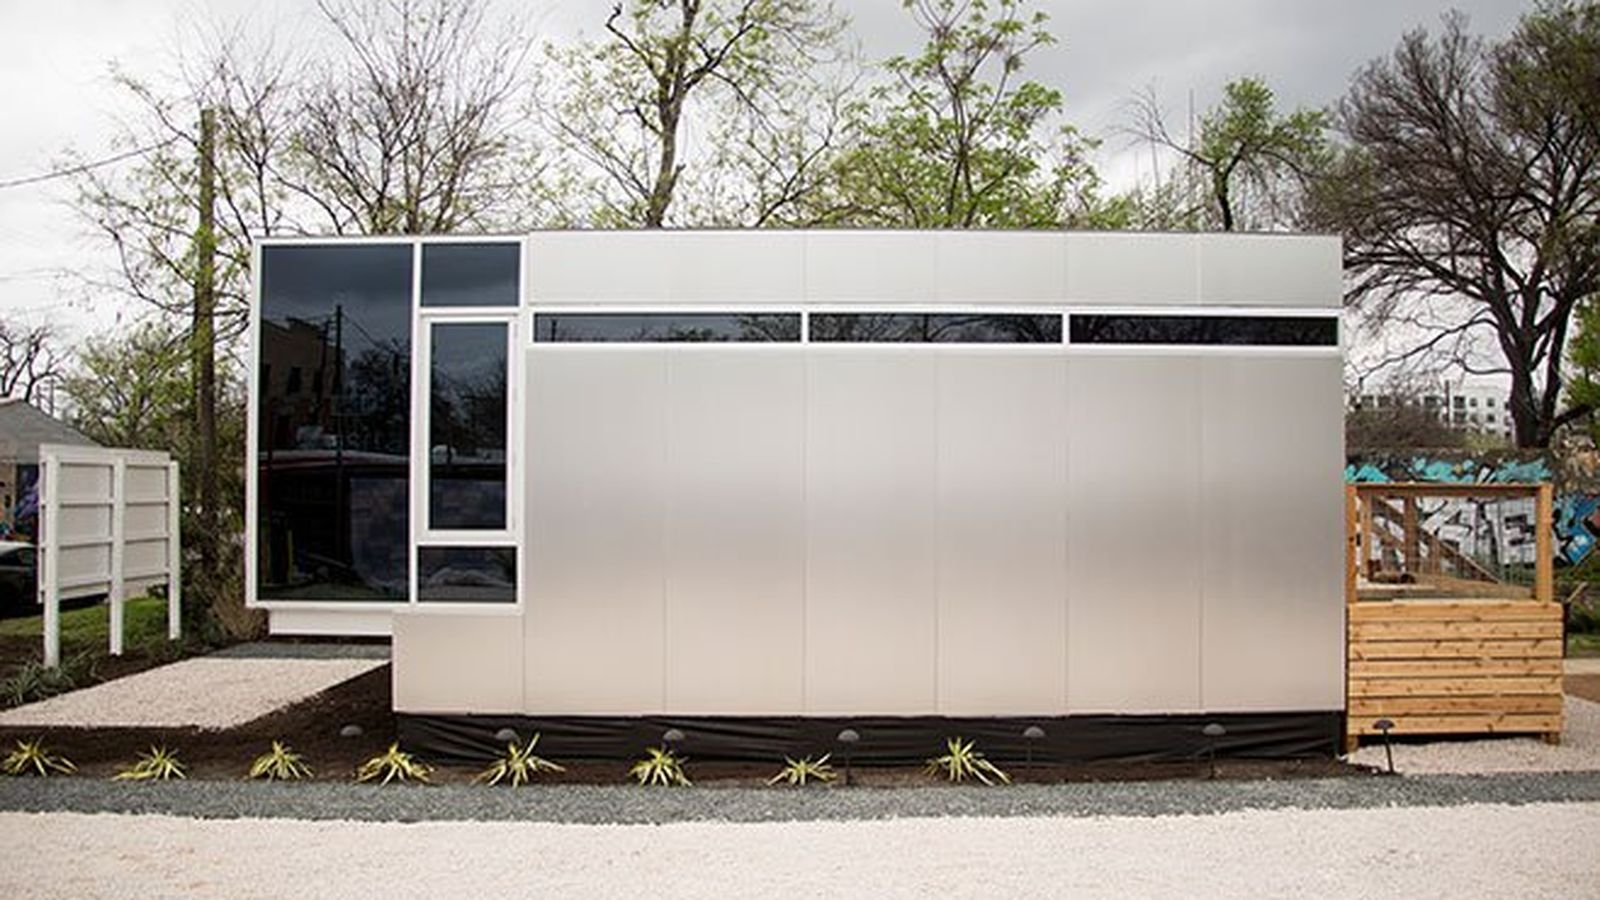 KASITA FINDS PLACE TO MANUFACTURE PREFAB TINY HOMES - (MAY 1, 2017 ...